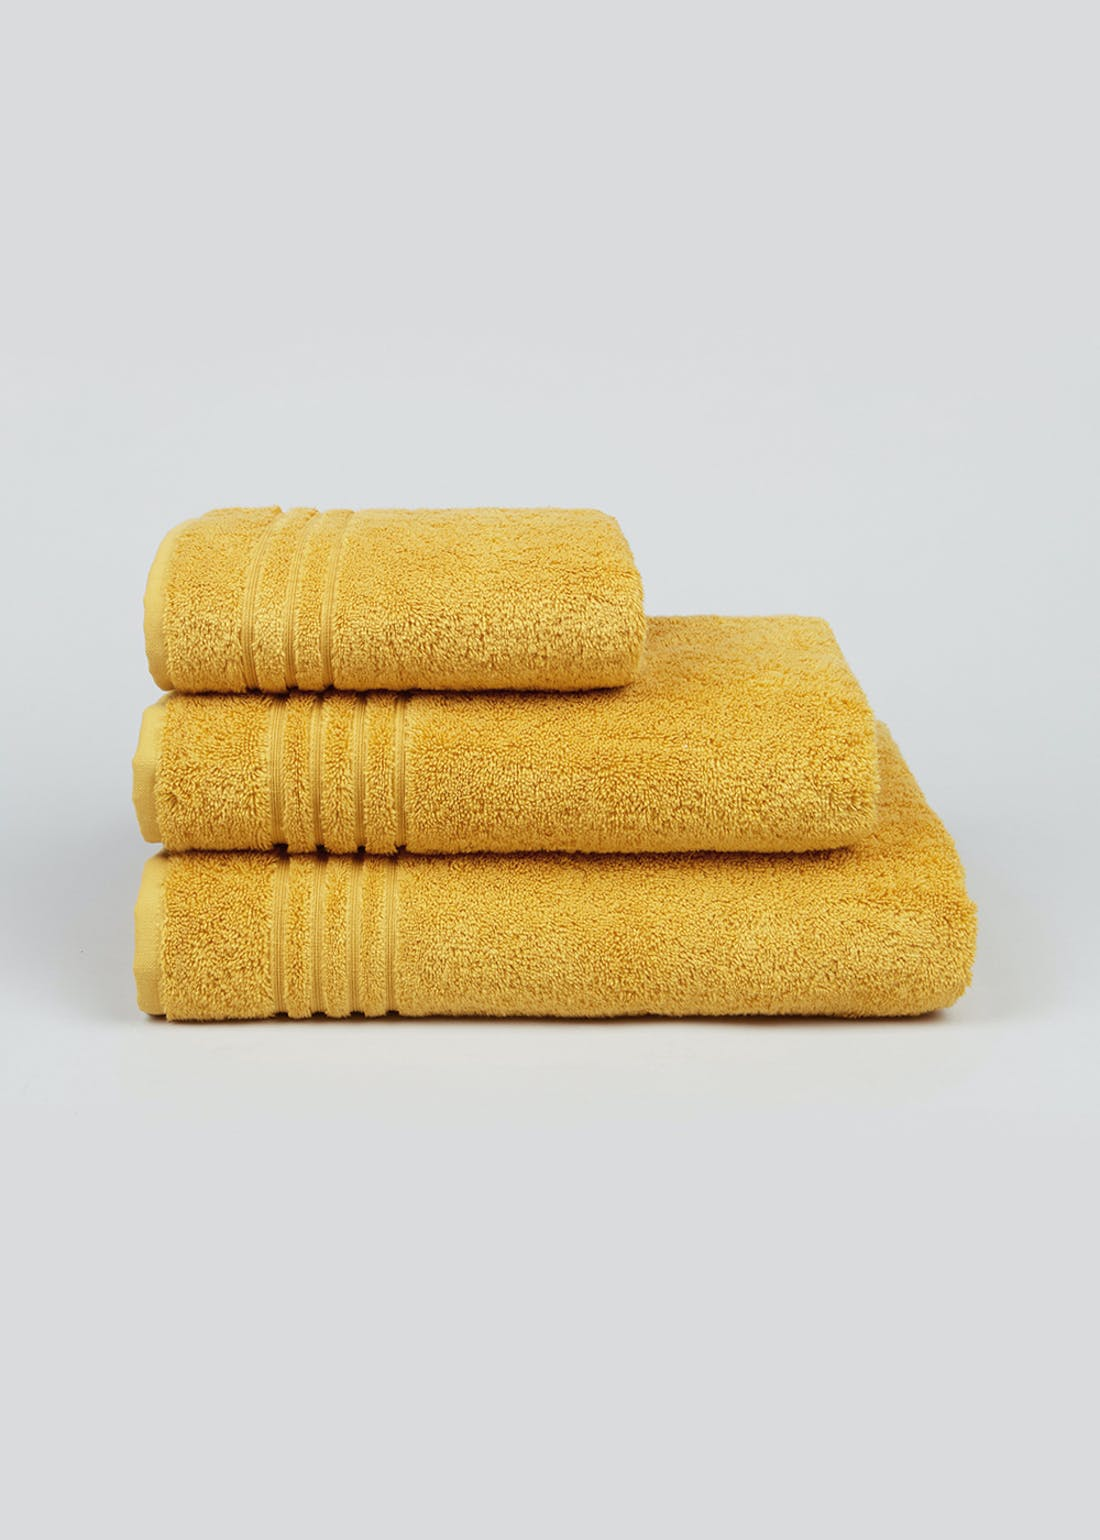 Egyptian Cotton Towels (680gsm)